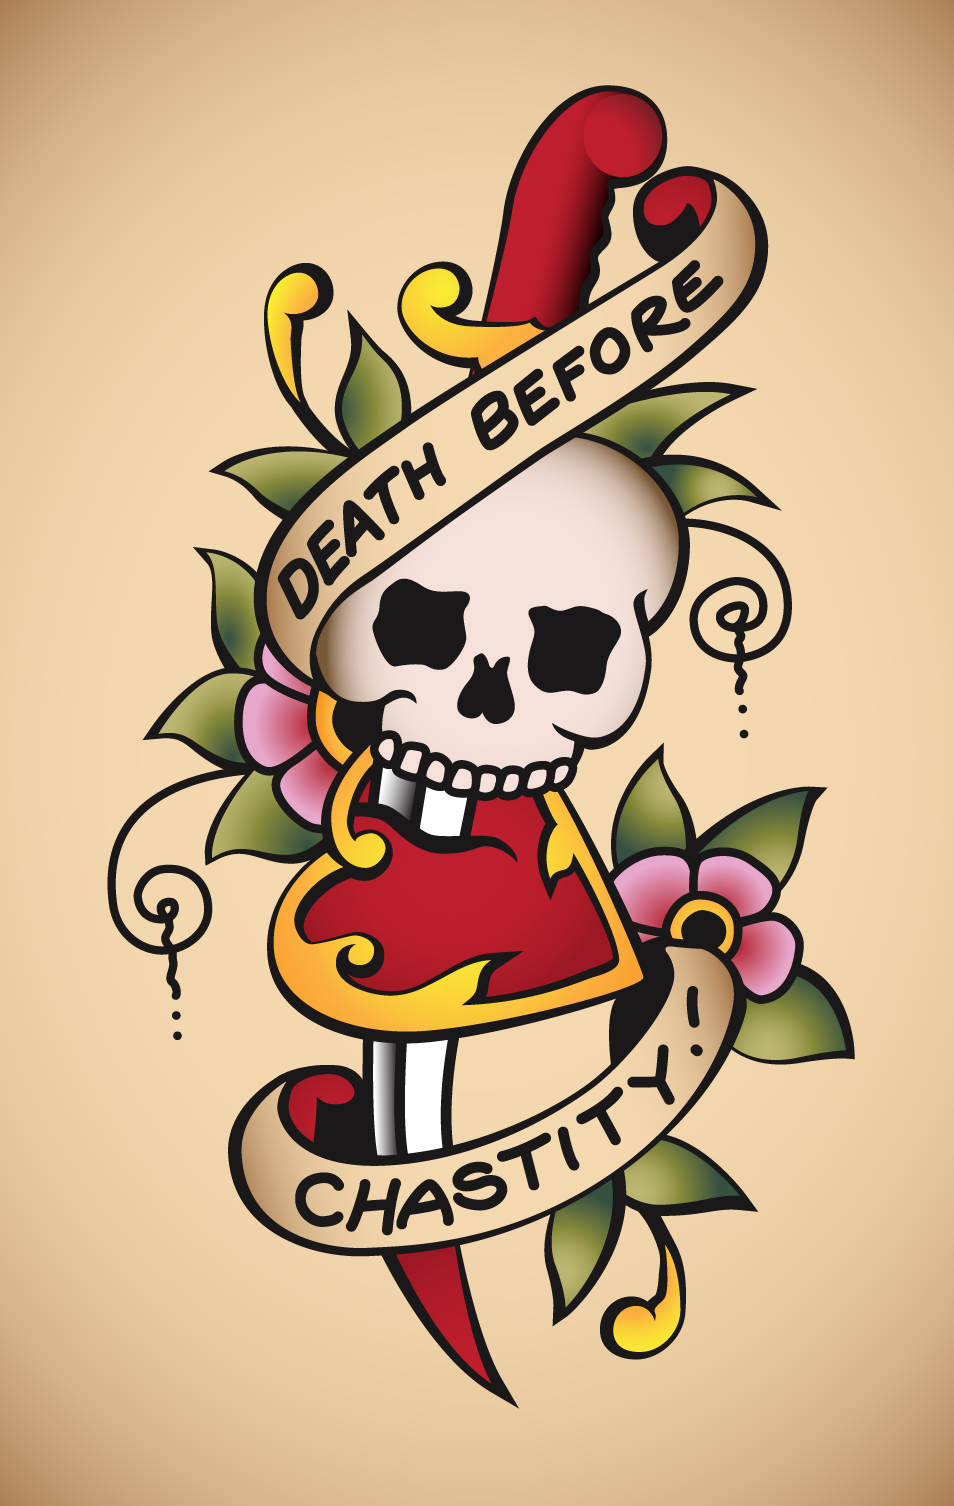 Tattoo — Chelbot